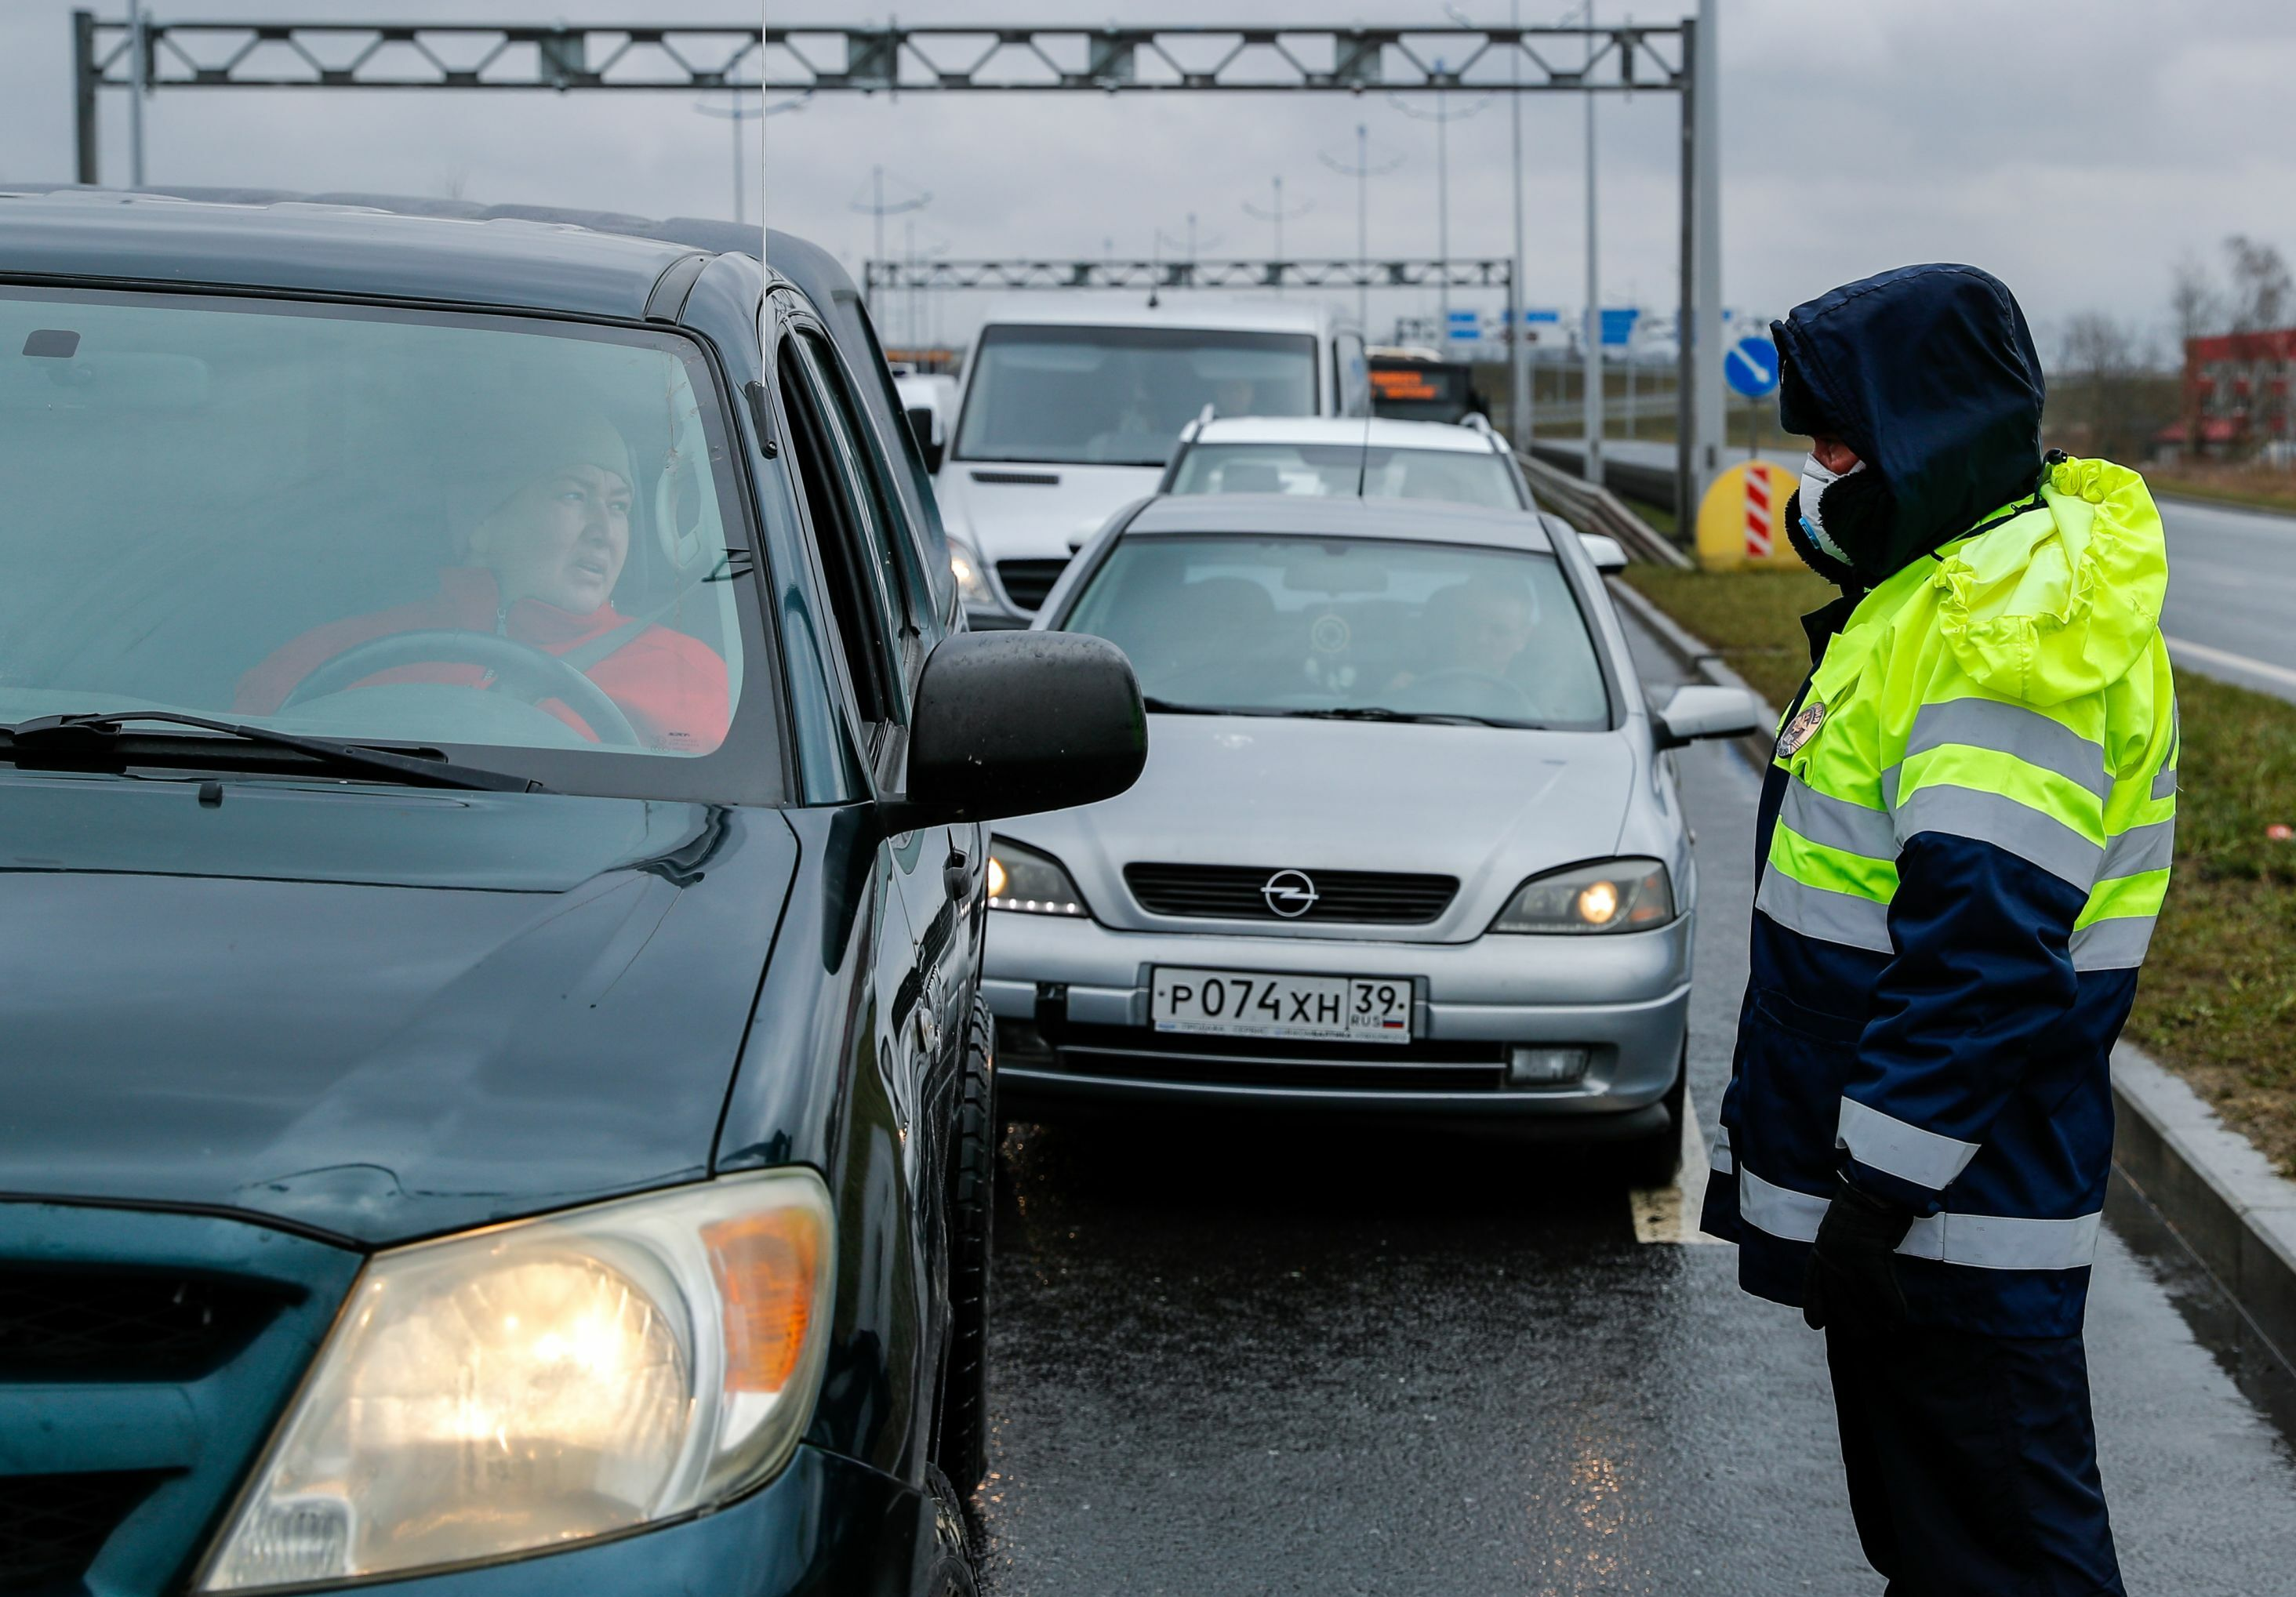 A police officer talks to a driver at a check point, after local authorities tightened up measures to prevent the spread of coronavirus disease (COVID-19), in Kaliningrad, Russia.